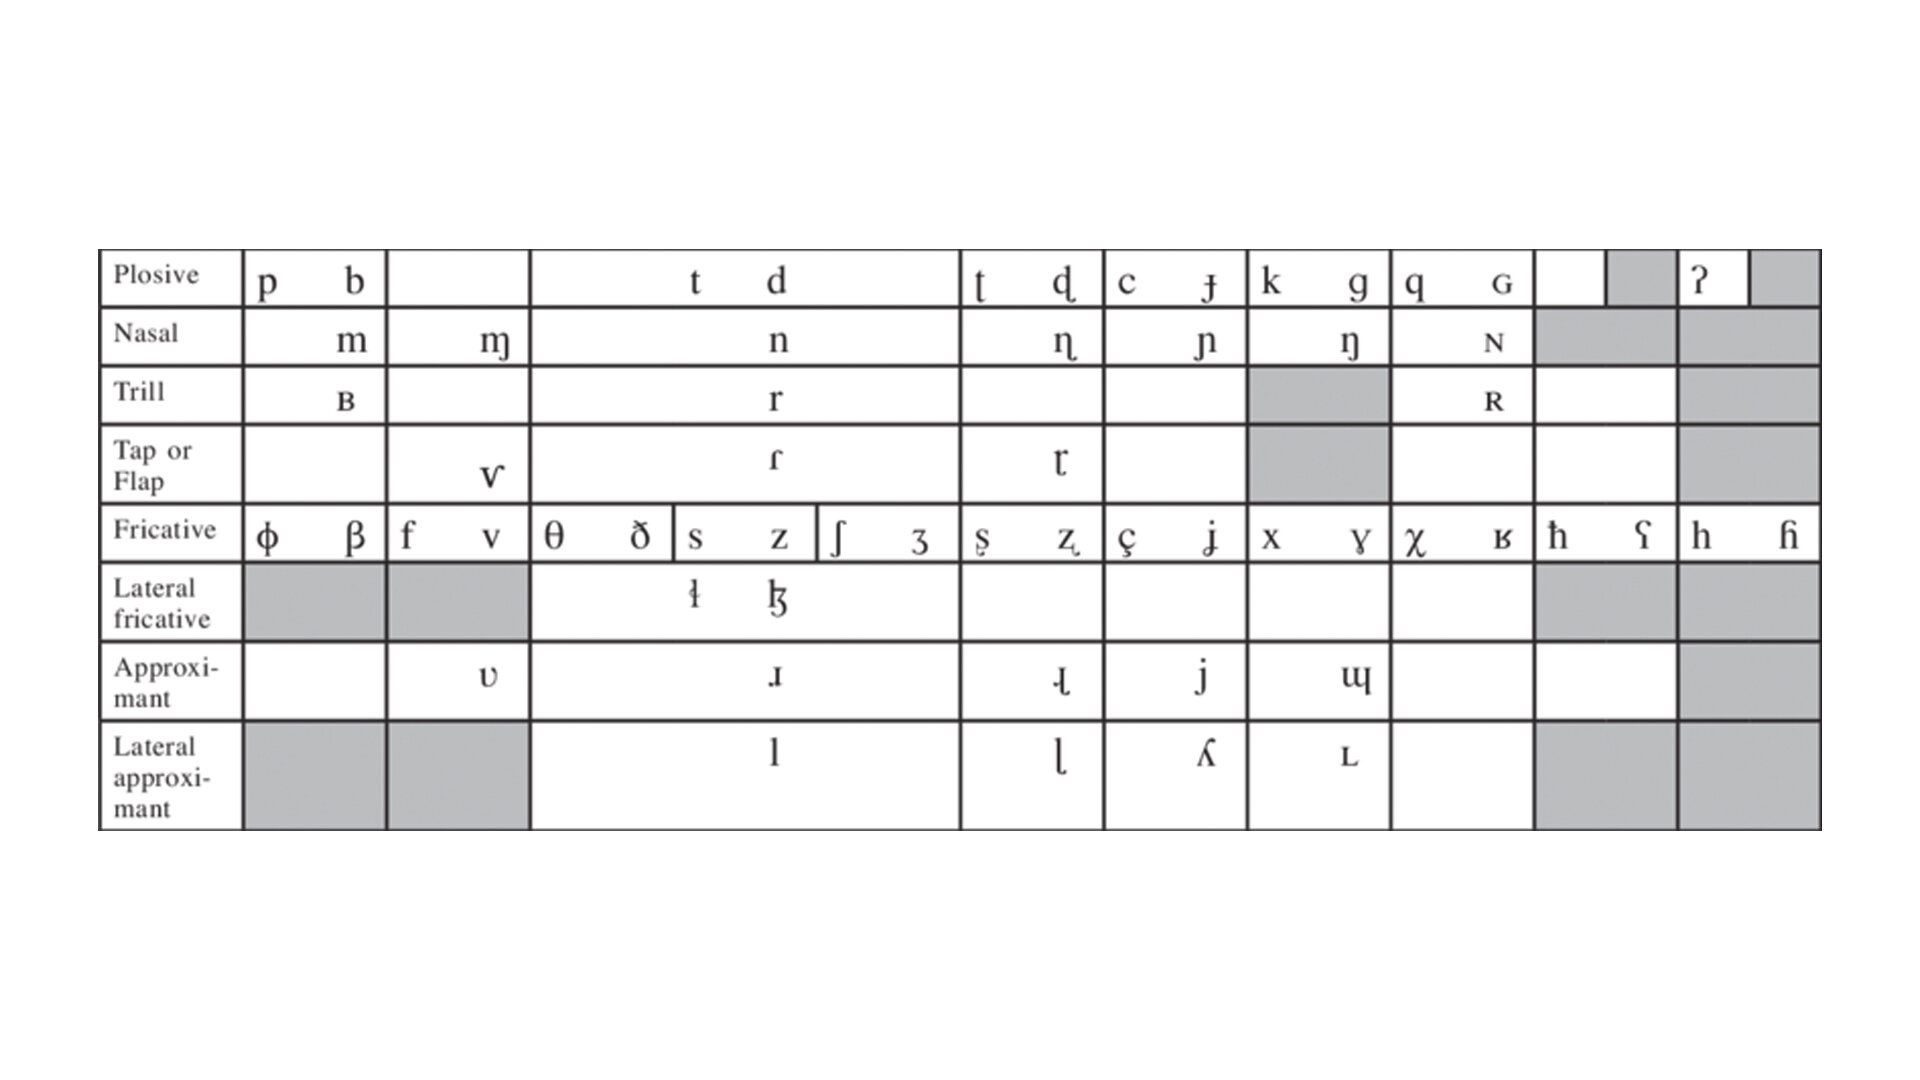 61: If you look at the table of the international phonetics alphabet, you can easily see the sounds that a human mouth can't make by looking at the empty cells.  https://www.youtube.com/watch?v=9uZam0ubq-Y